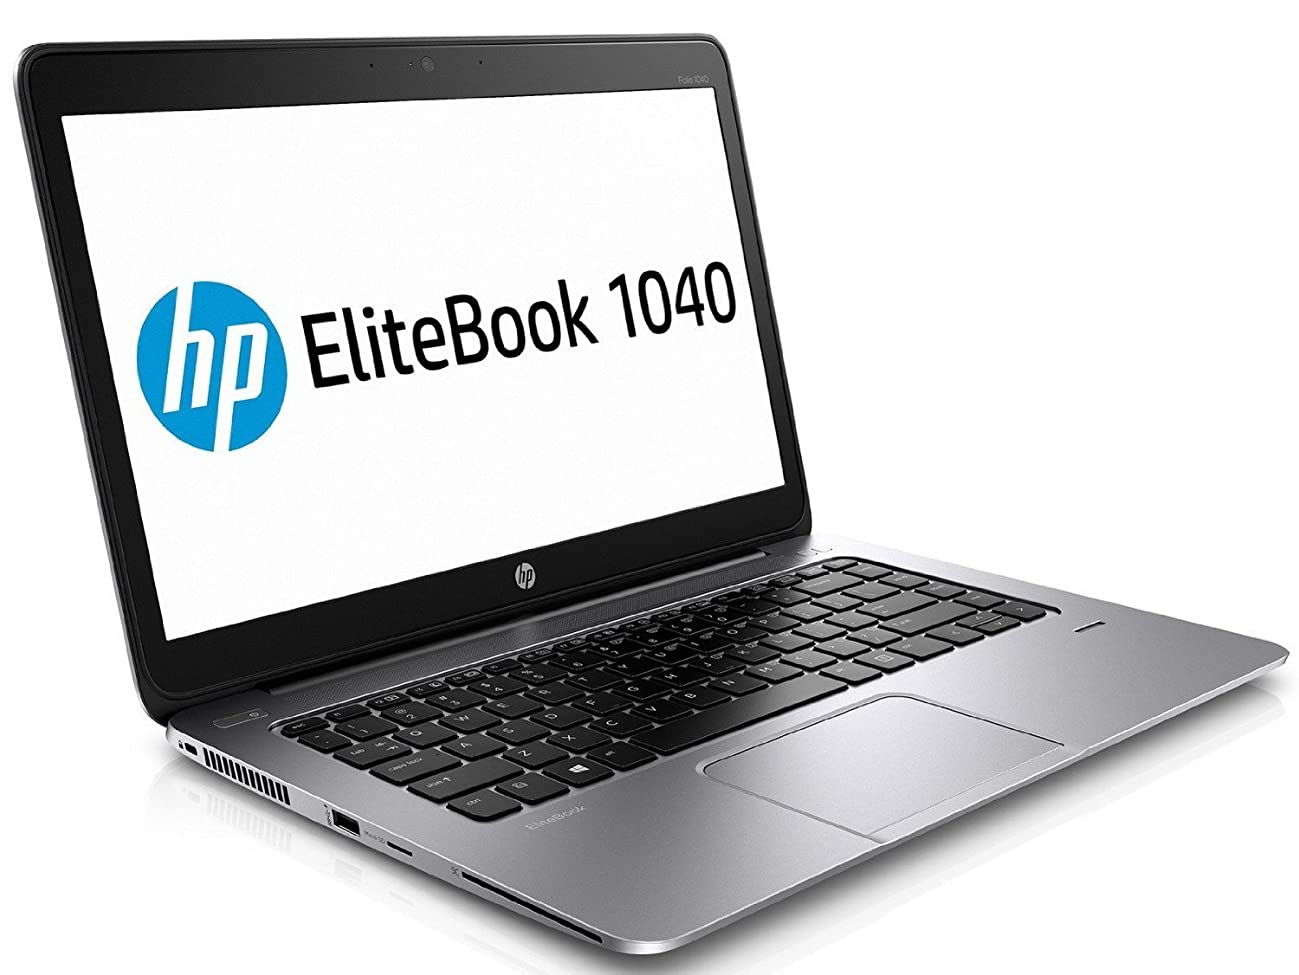 HP EliteBook Folio 1040 Notebook PC - Intel Core i7-4650 1.7GHz 8GB 256GB SSD NO OPTICAL Windows 10 Professional (Renewed)